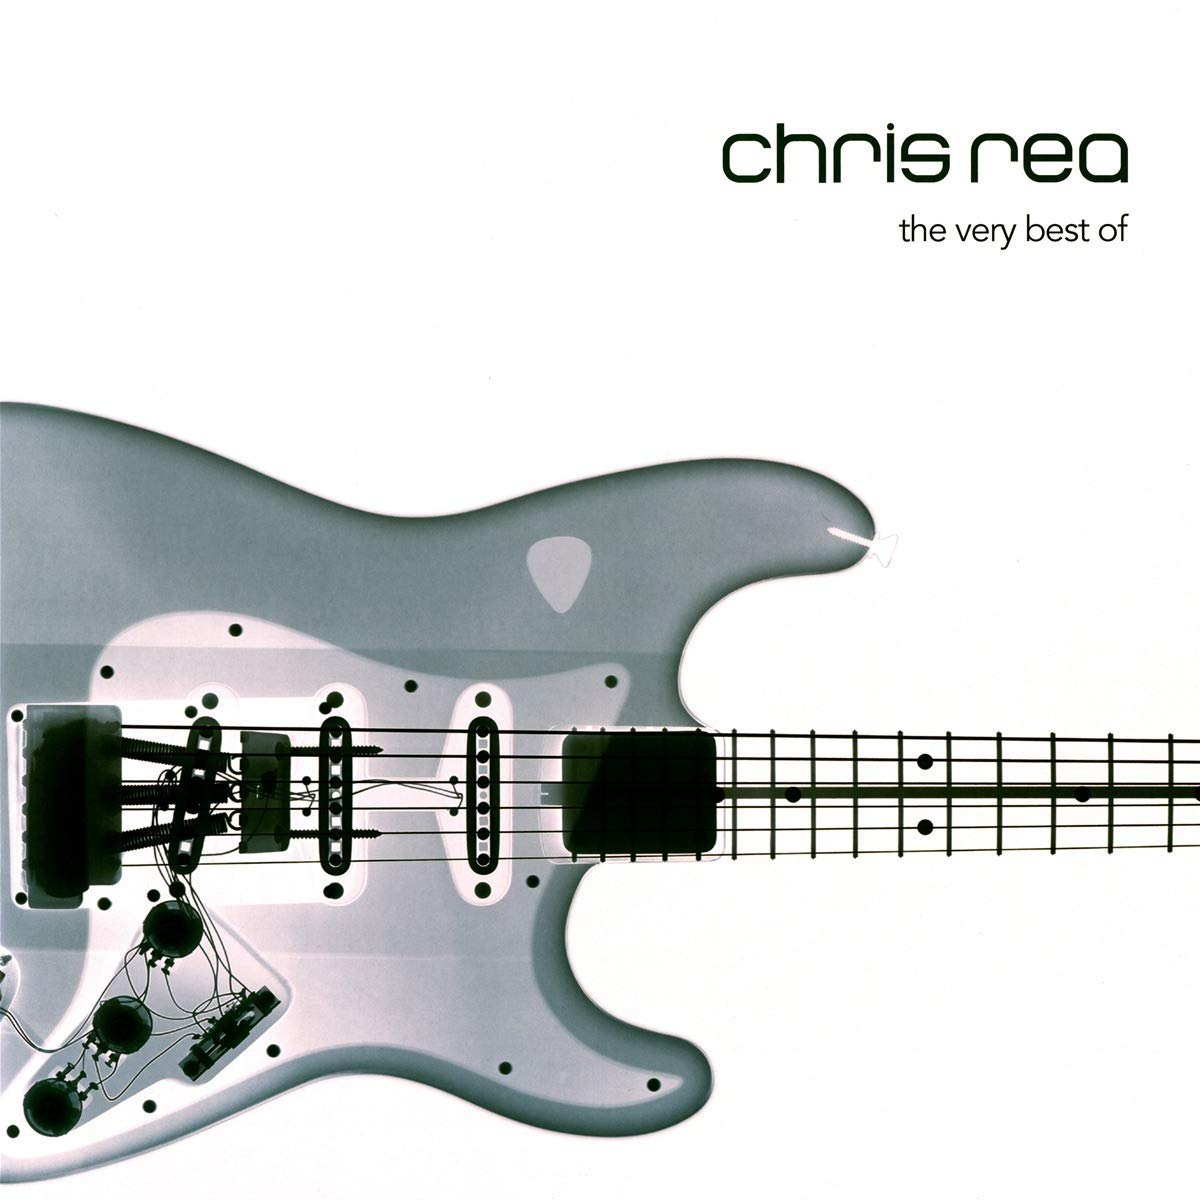 The Very Best Of Chris Rea - Vinyl thumbnail